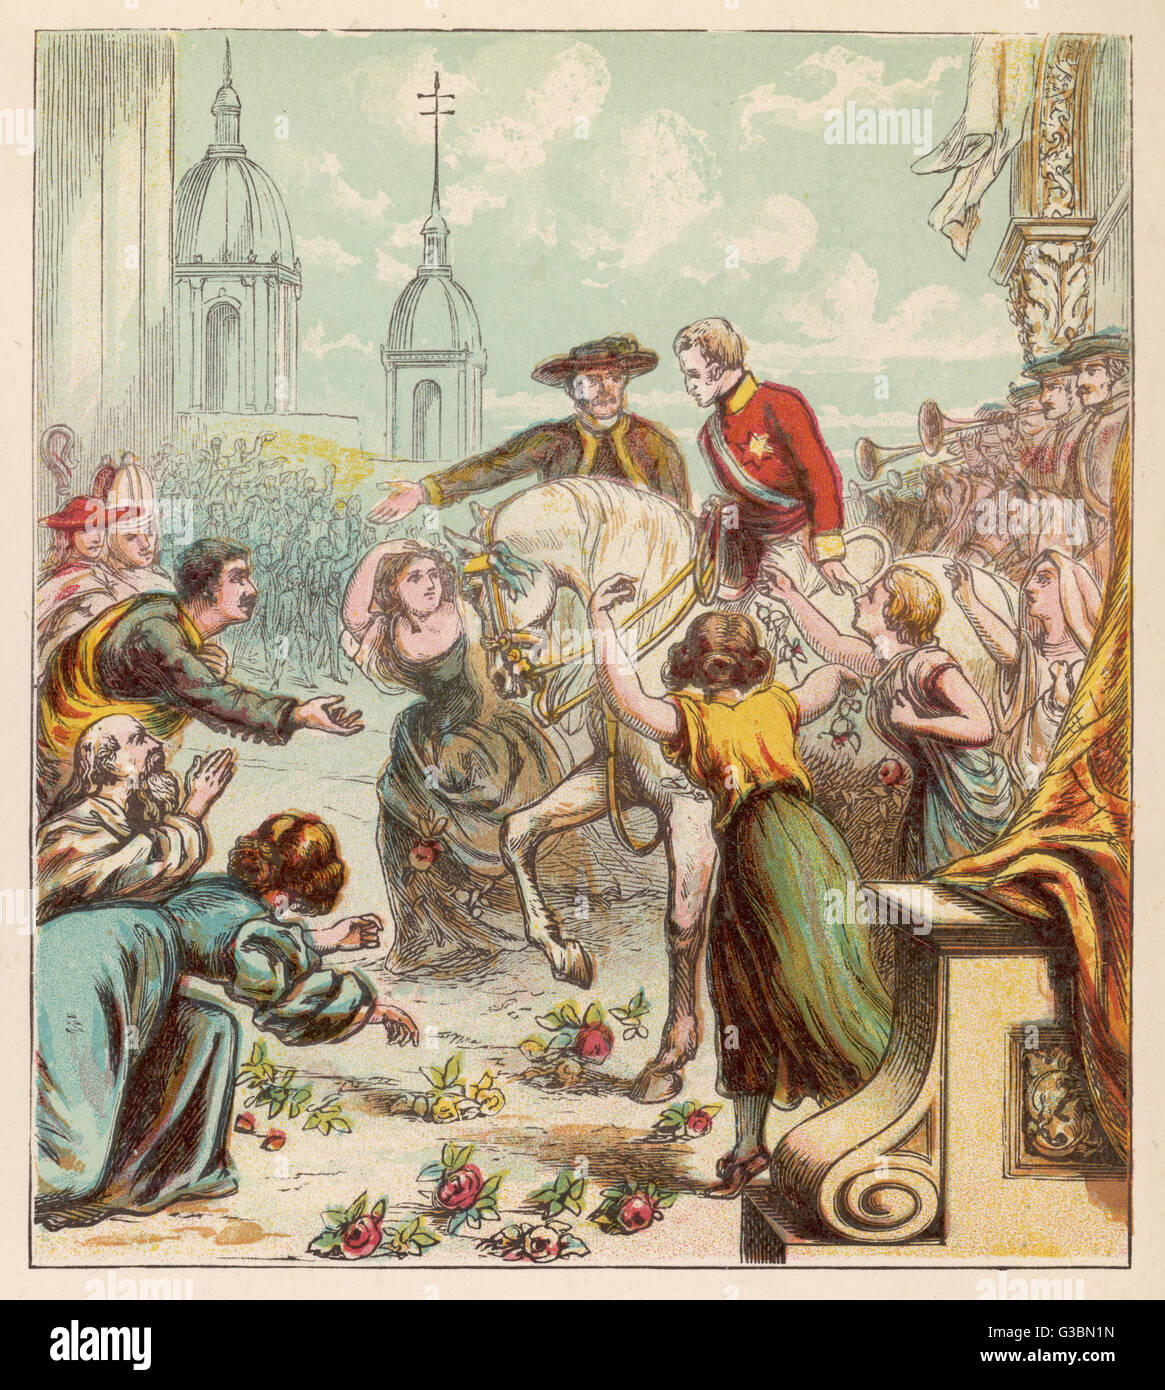 The Duke of Wellington enters  Madrid at the head of the  British army having driven the  French out, and is welcomed - Stock Image